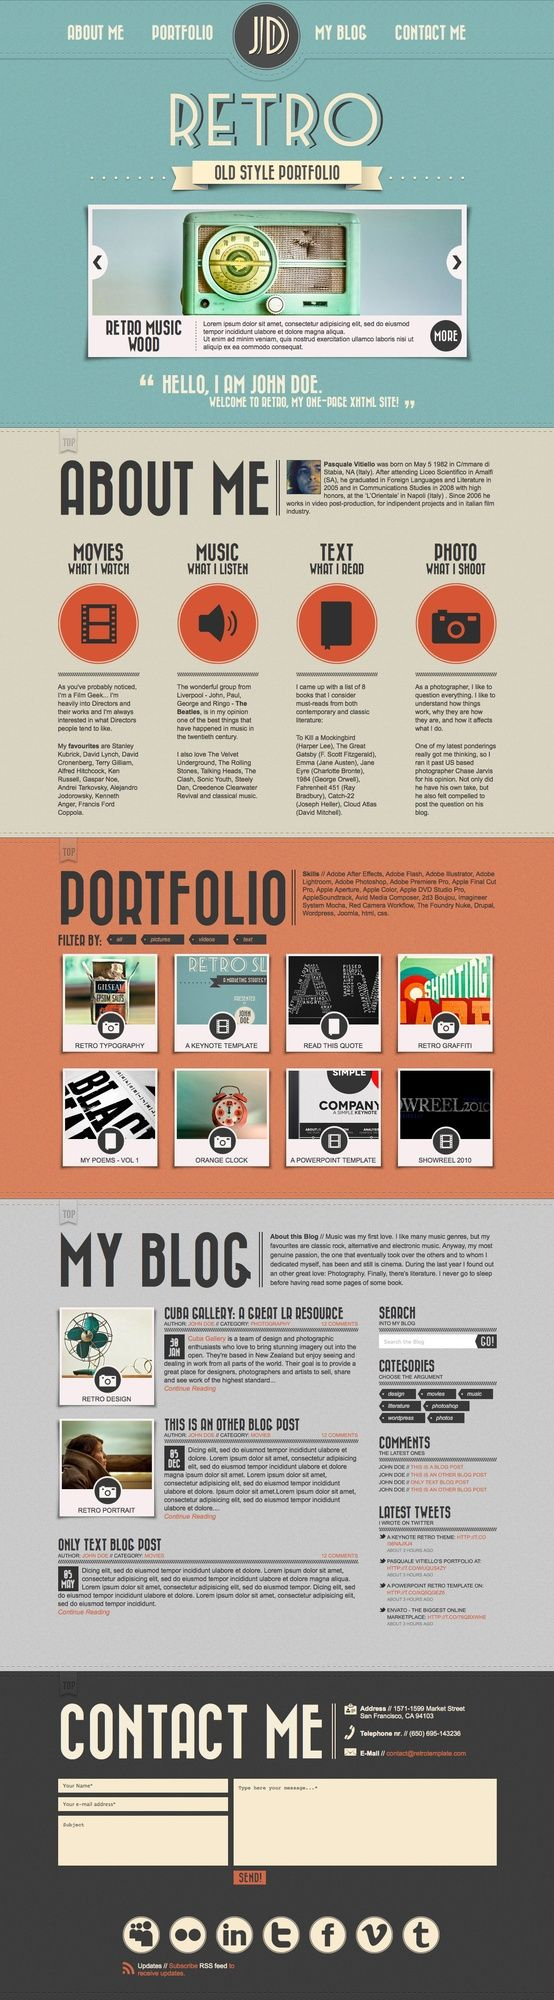 Awesome #Retro look!  #webdesign 83oranges.com Get this template from: http://themeforest.net/?ref=Vision7Studio